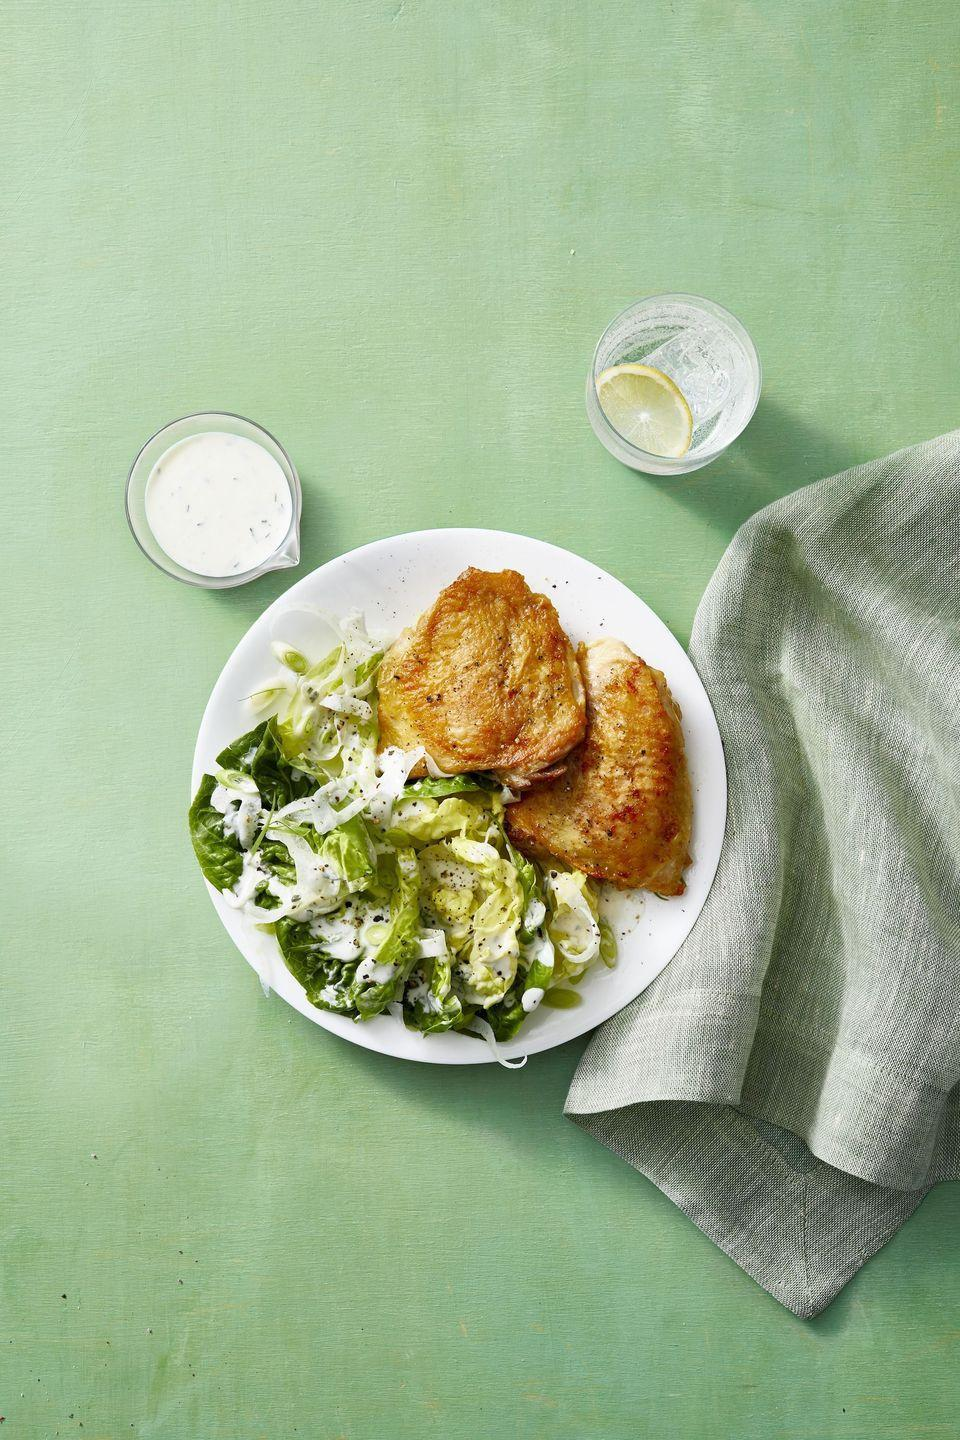 "<p>Chicken thighs are cheap, delicious, and most of all, so easy and versatile to make. This version sings thanks to a creamy salad with a riff on ranch dressing.</p><p><a href=""https://www.womansday.com/food-recipes/a31979640/crispy-chicken-thighs-with-buttermilk-fennel-salad-recipe/"" rel=""nofollow noopener"" target=""_blank"" data-ylk=""slk:Get the recipe from Woman's Day »"" class=""link rapid-noclick-resp""><em>Get the recipe from Woman's Day »</em> </a></p>"